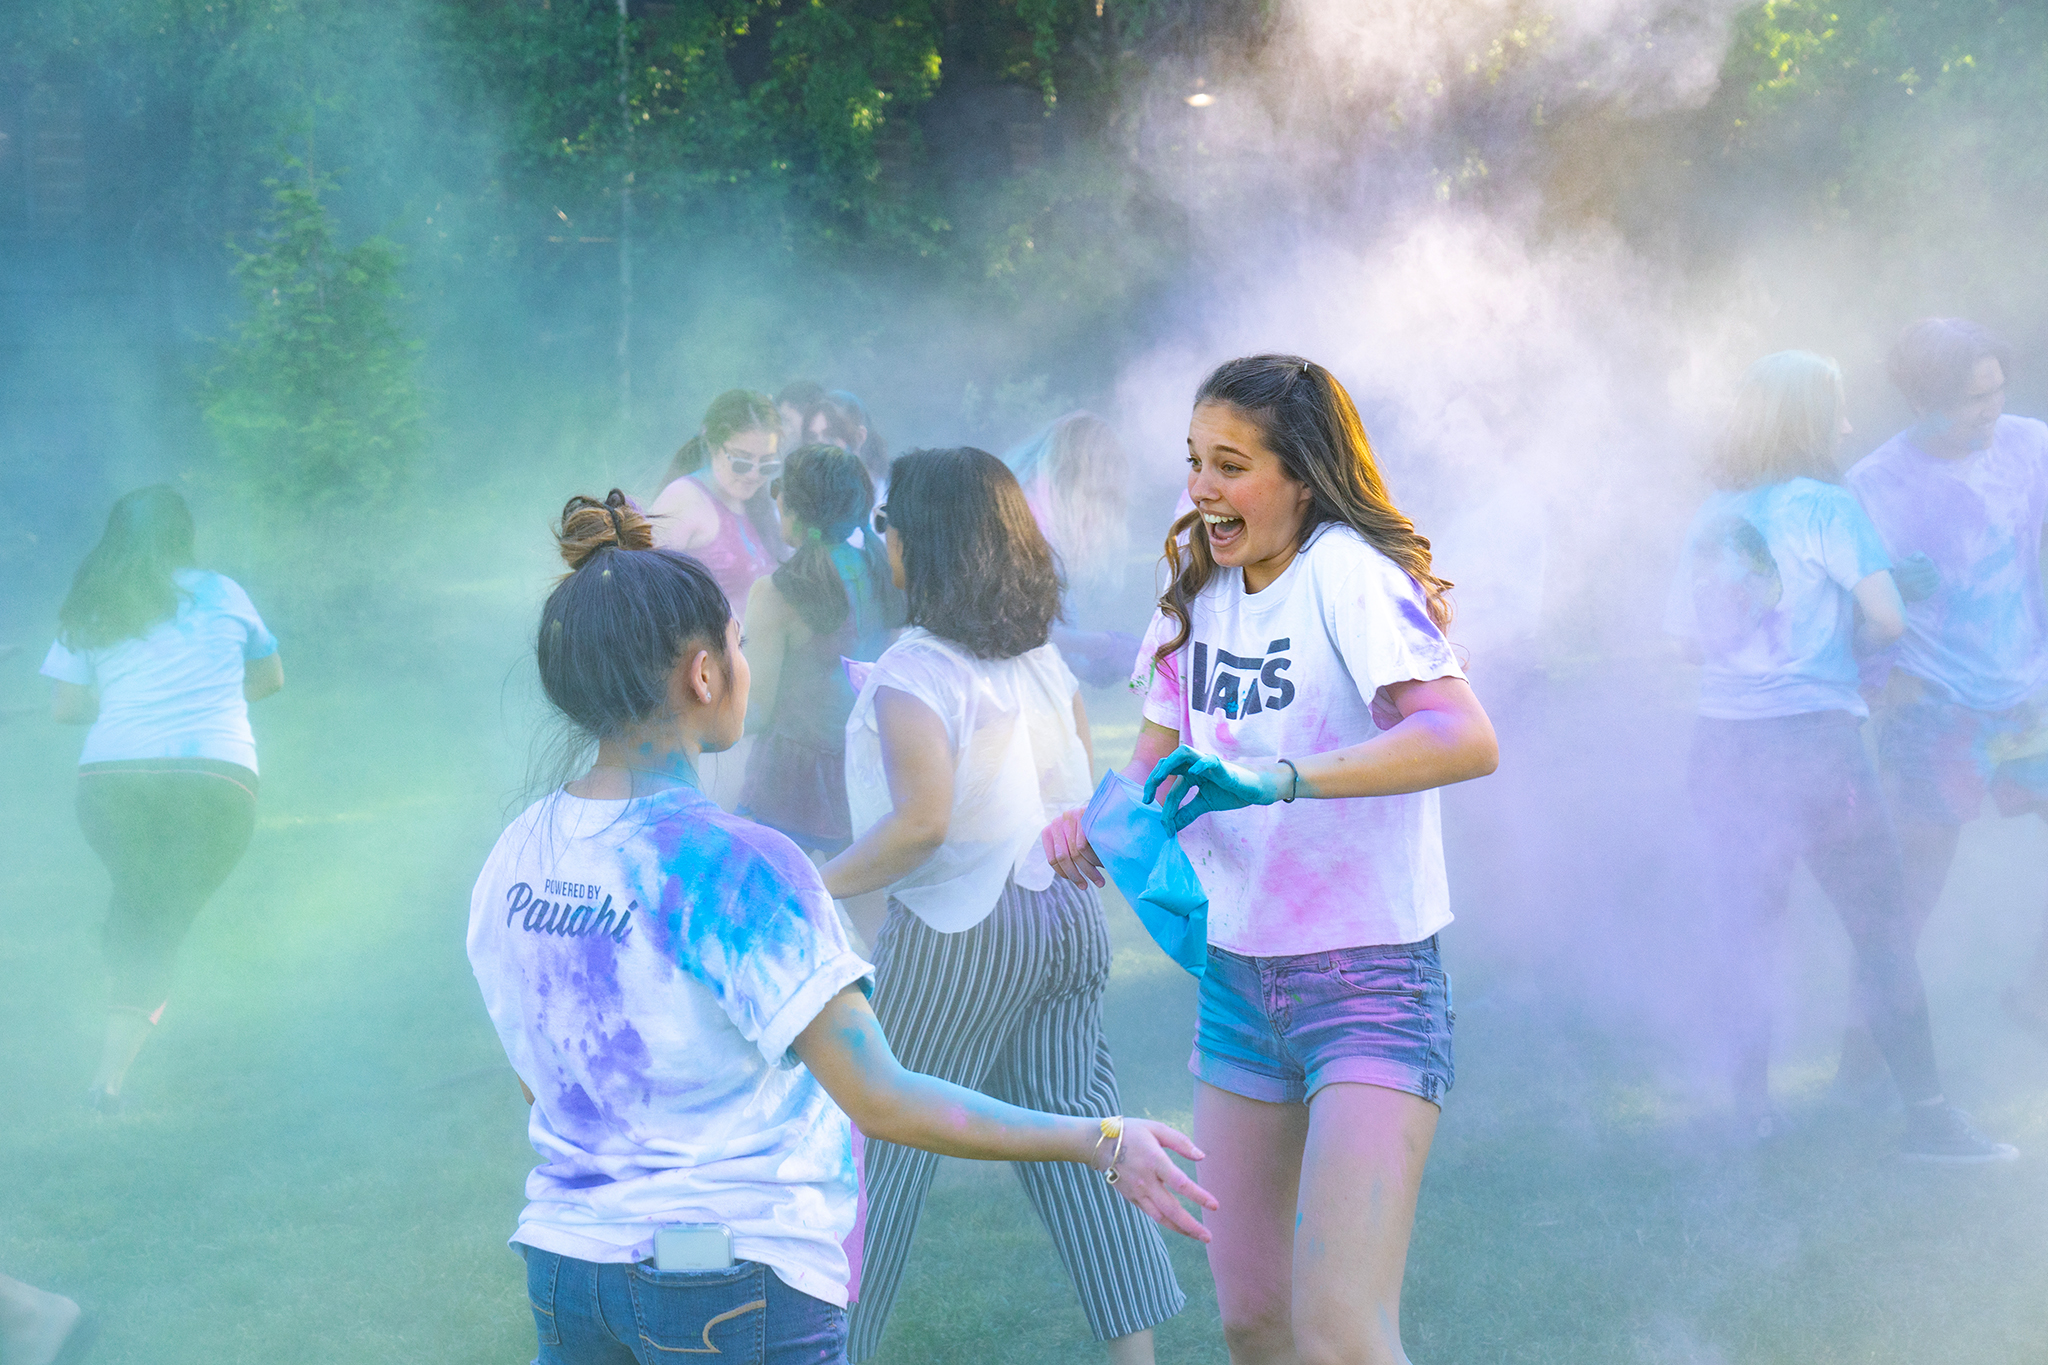 Seattle University Welcomes Spring with Holi Celebration